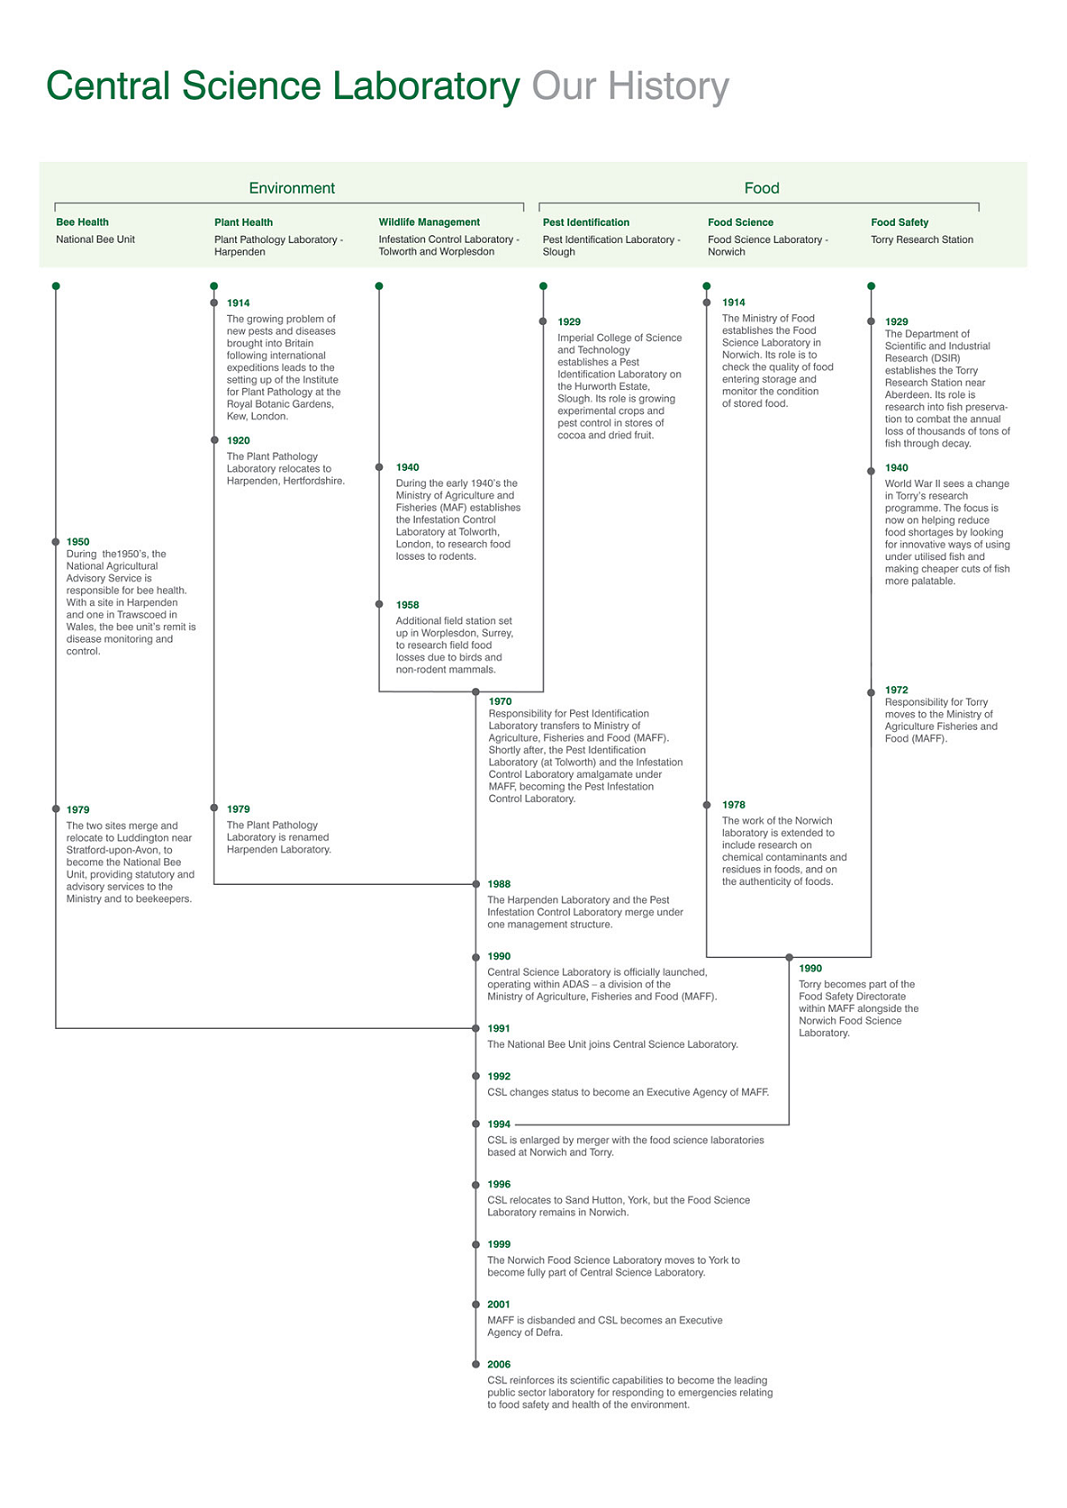 File:CSL timeline PNG - Wikipedia